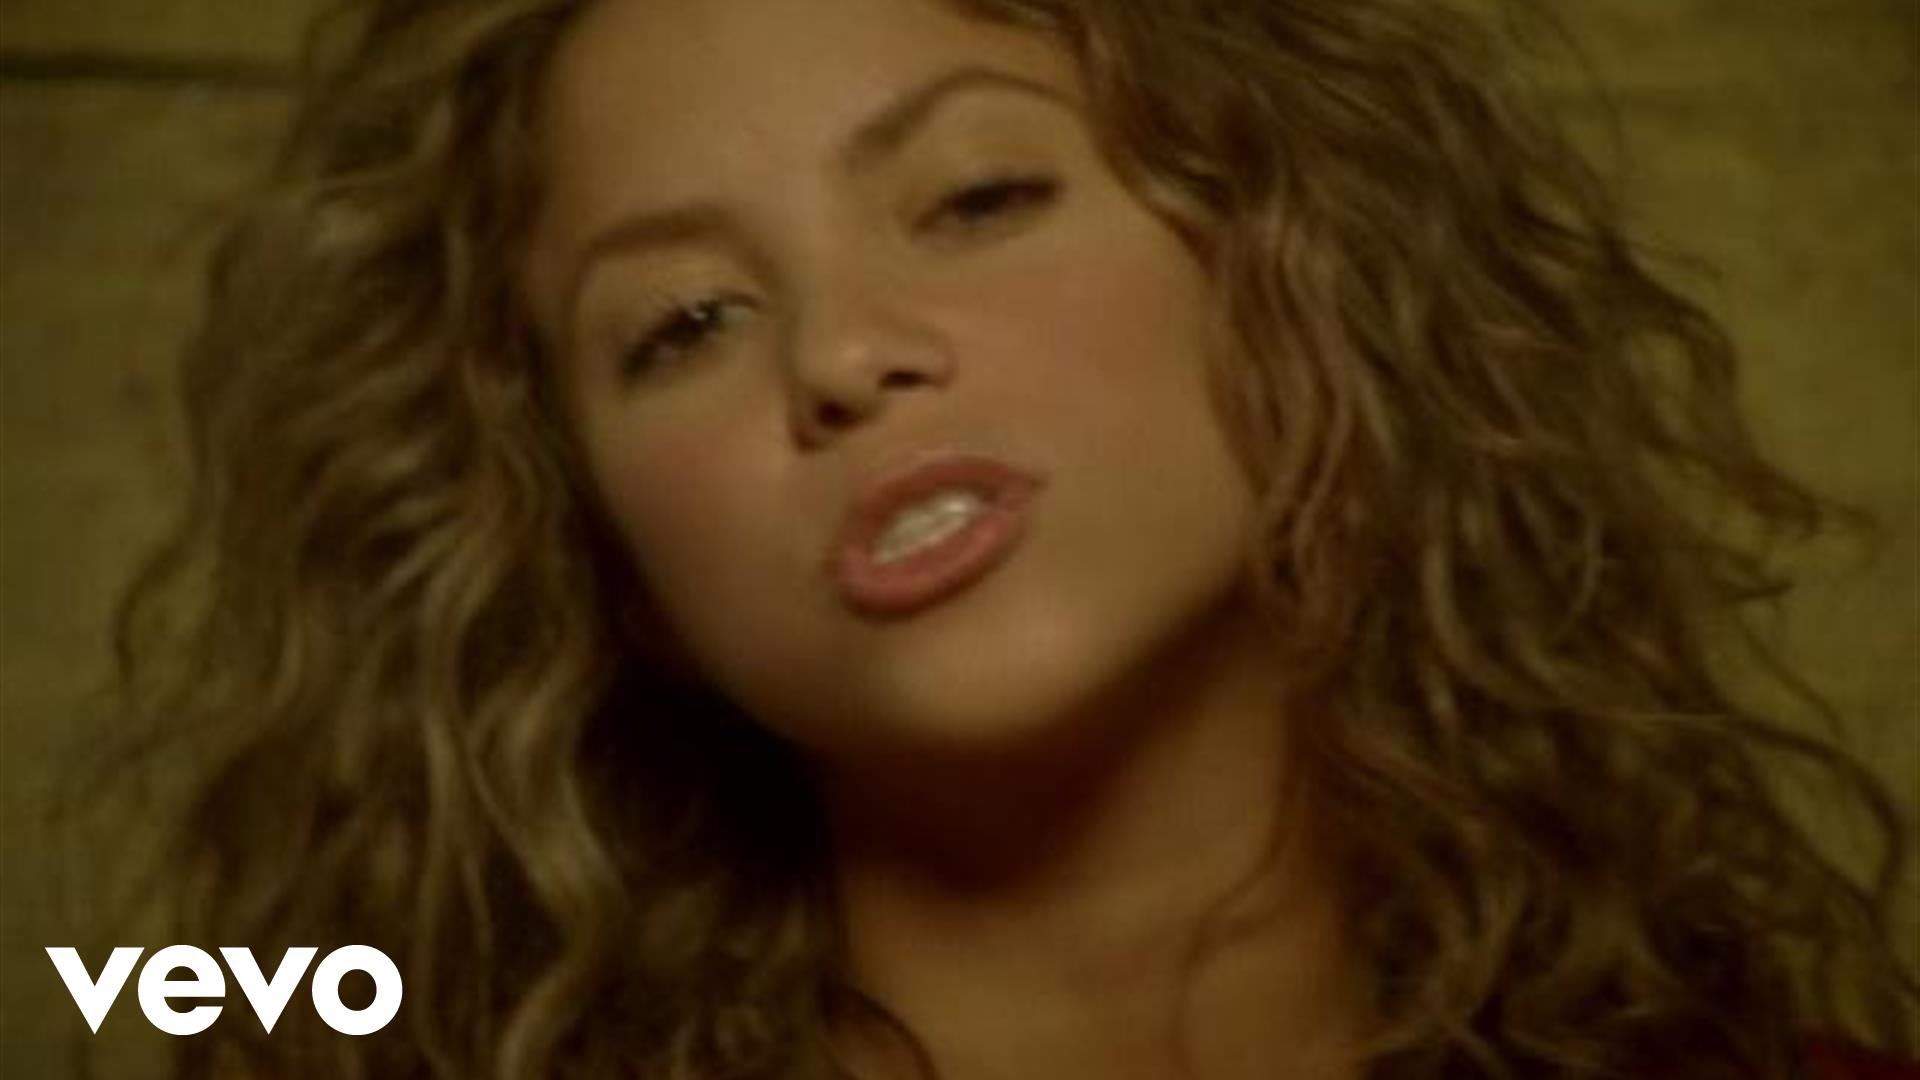 Best shakira hips dont lie gifs | find the top gif on gfycat.